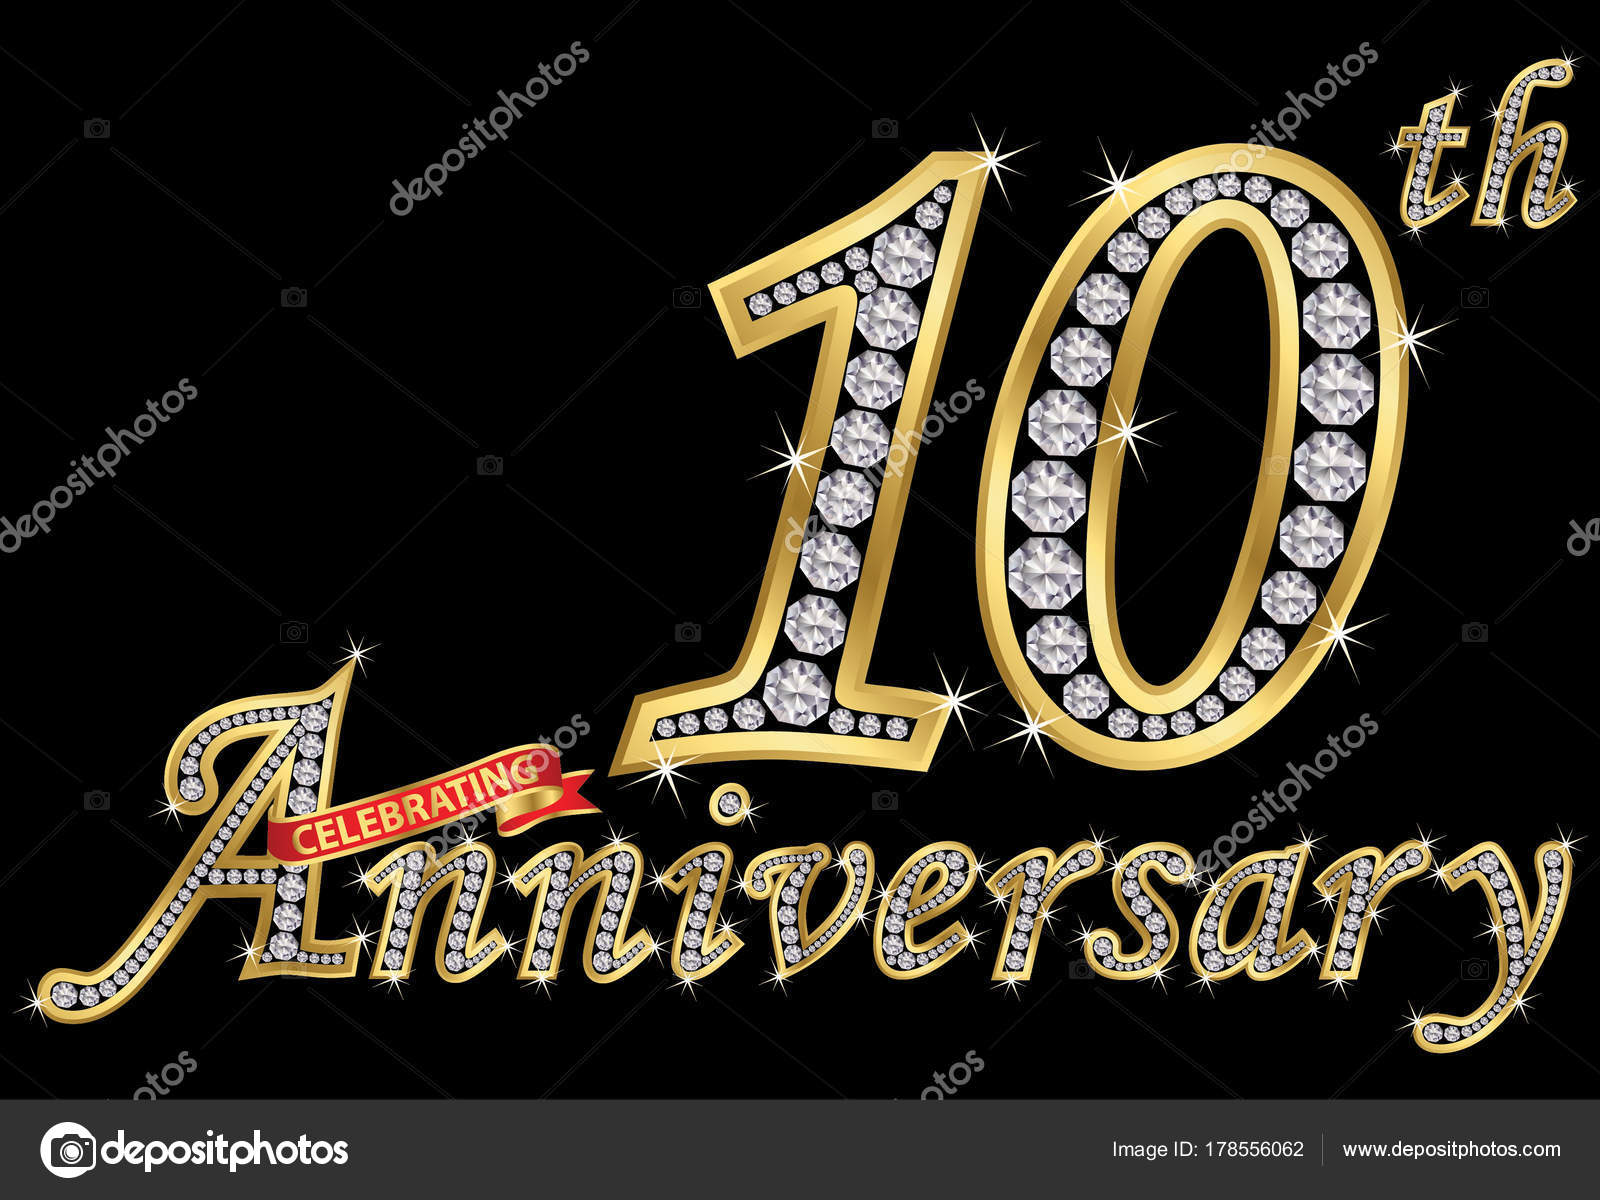 Celebrating th anniversary golden sign with diamonds vector